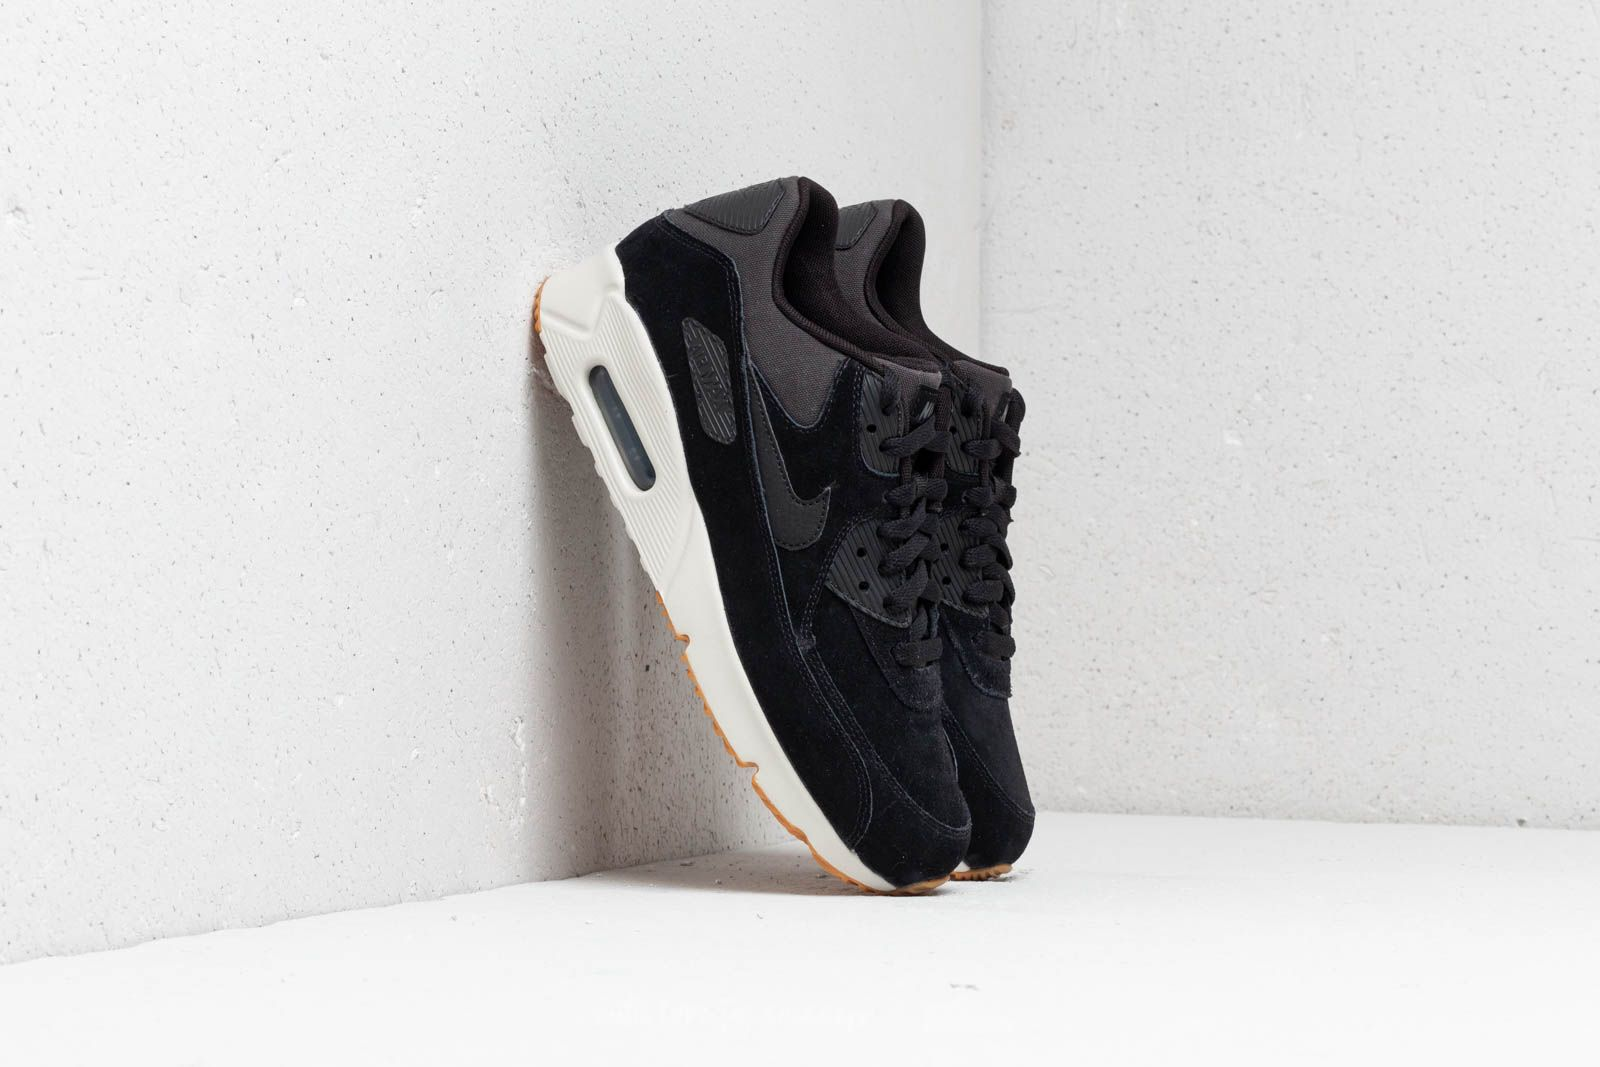 detailed look 89707 eb525 Nike Air Max 90 Ultra 2.0 Leather Black/ Black-Light Bone ...